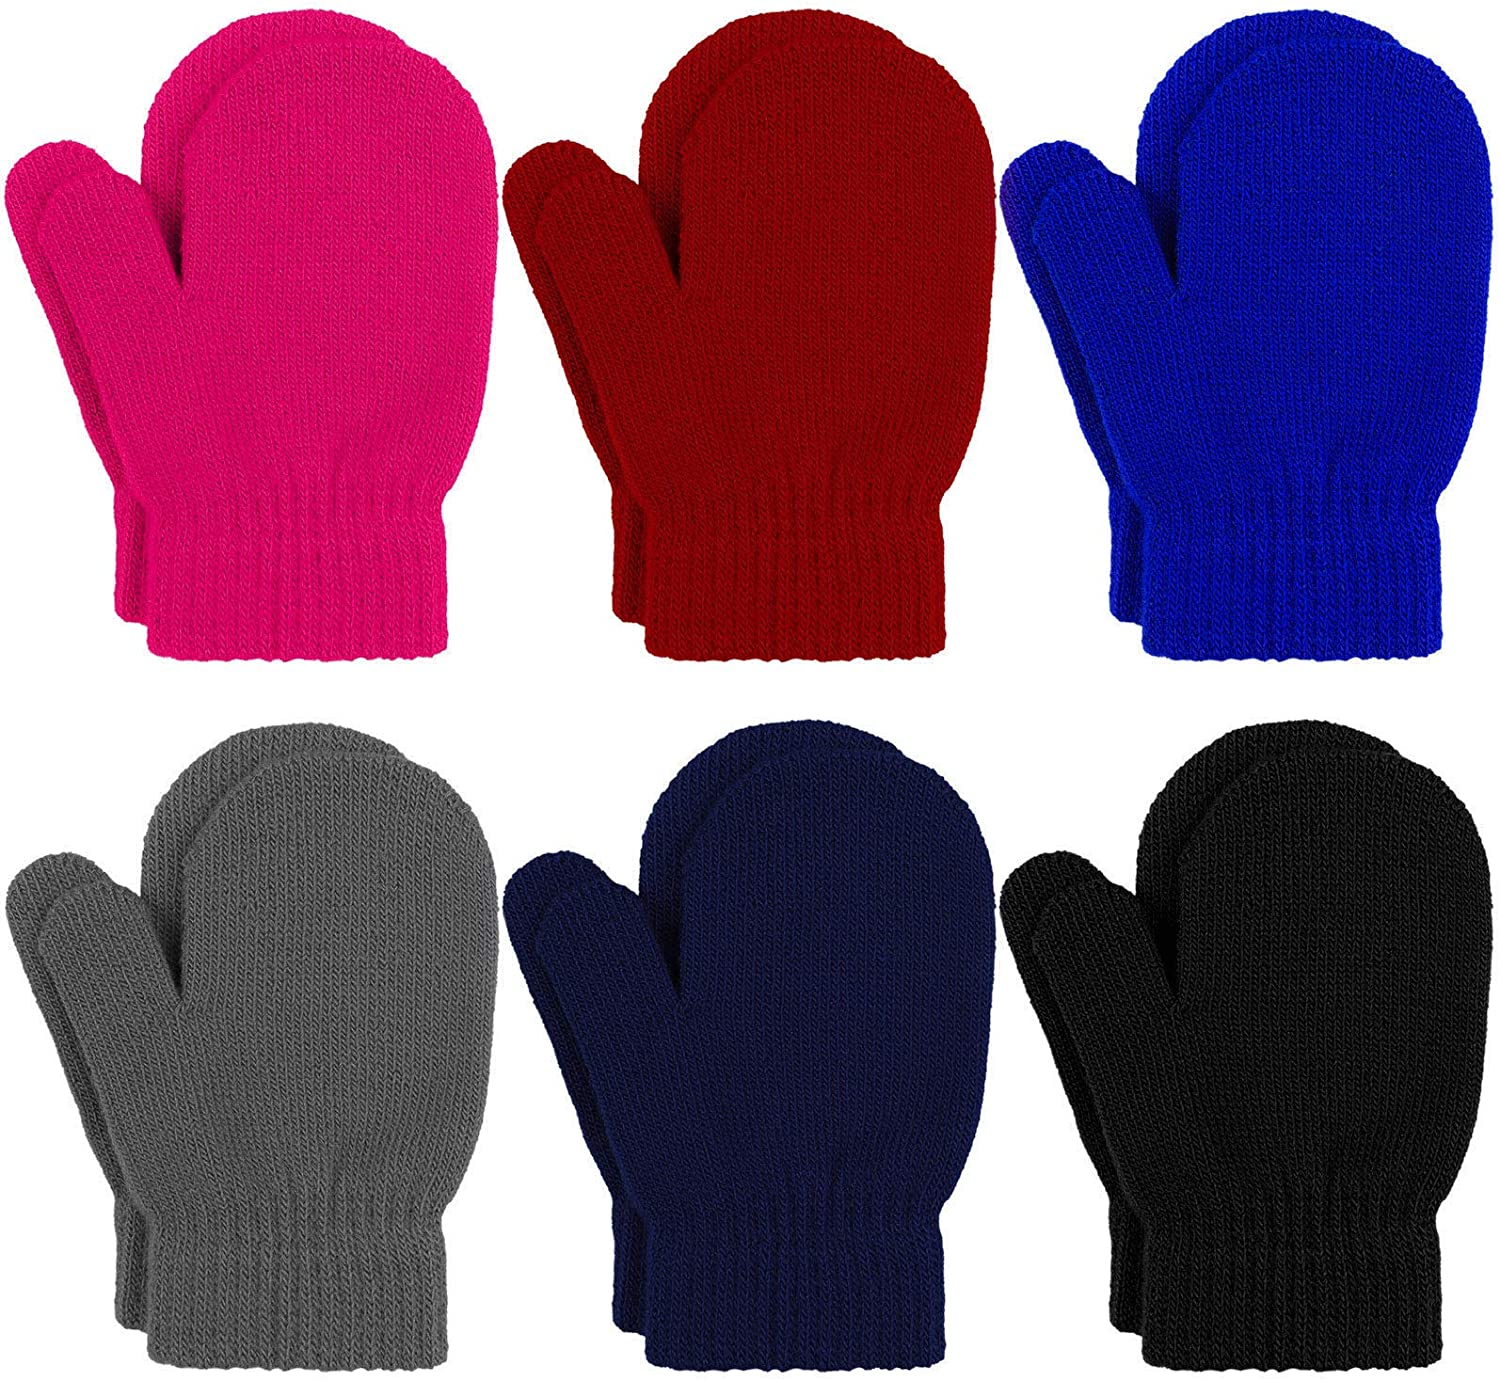 Industry No. 1 In stock URATOT 6 Pairs Toddler Knitted Wint Stretch Mittens Magic Gloves